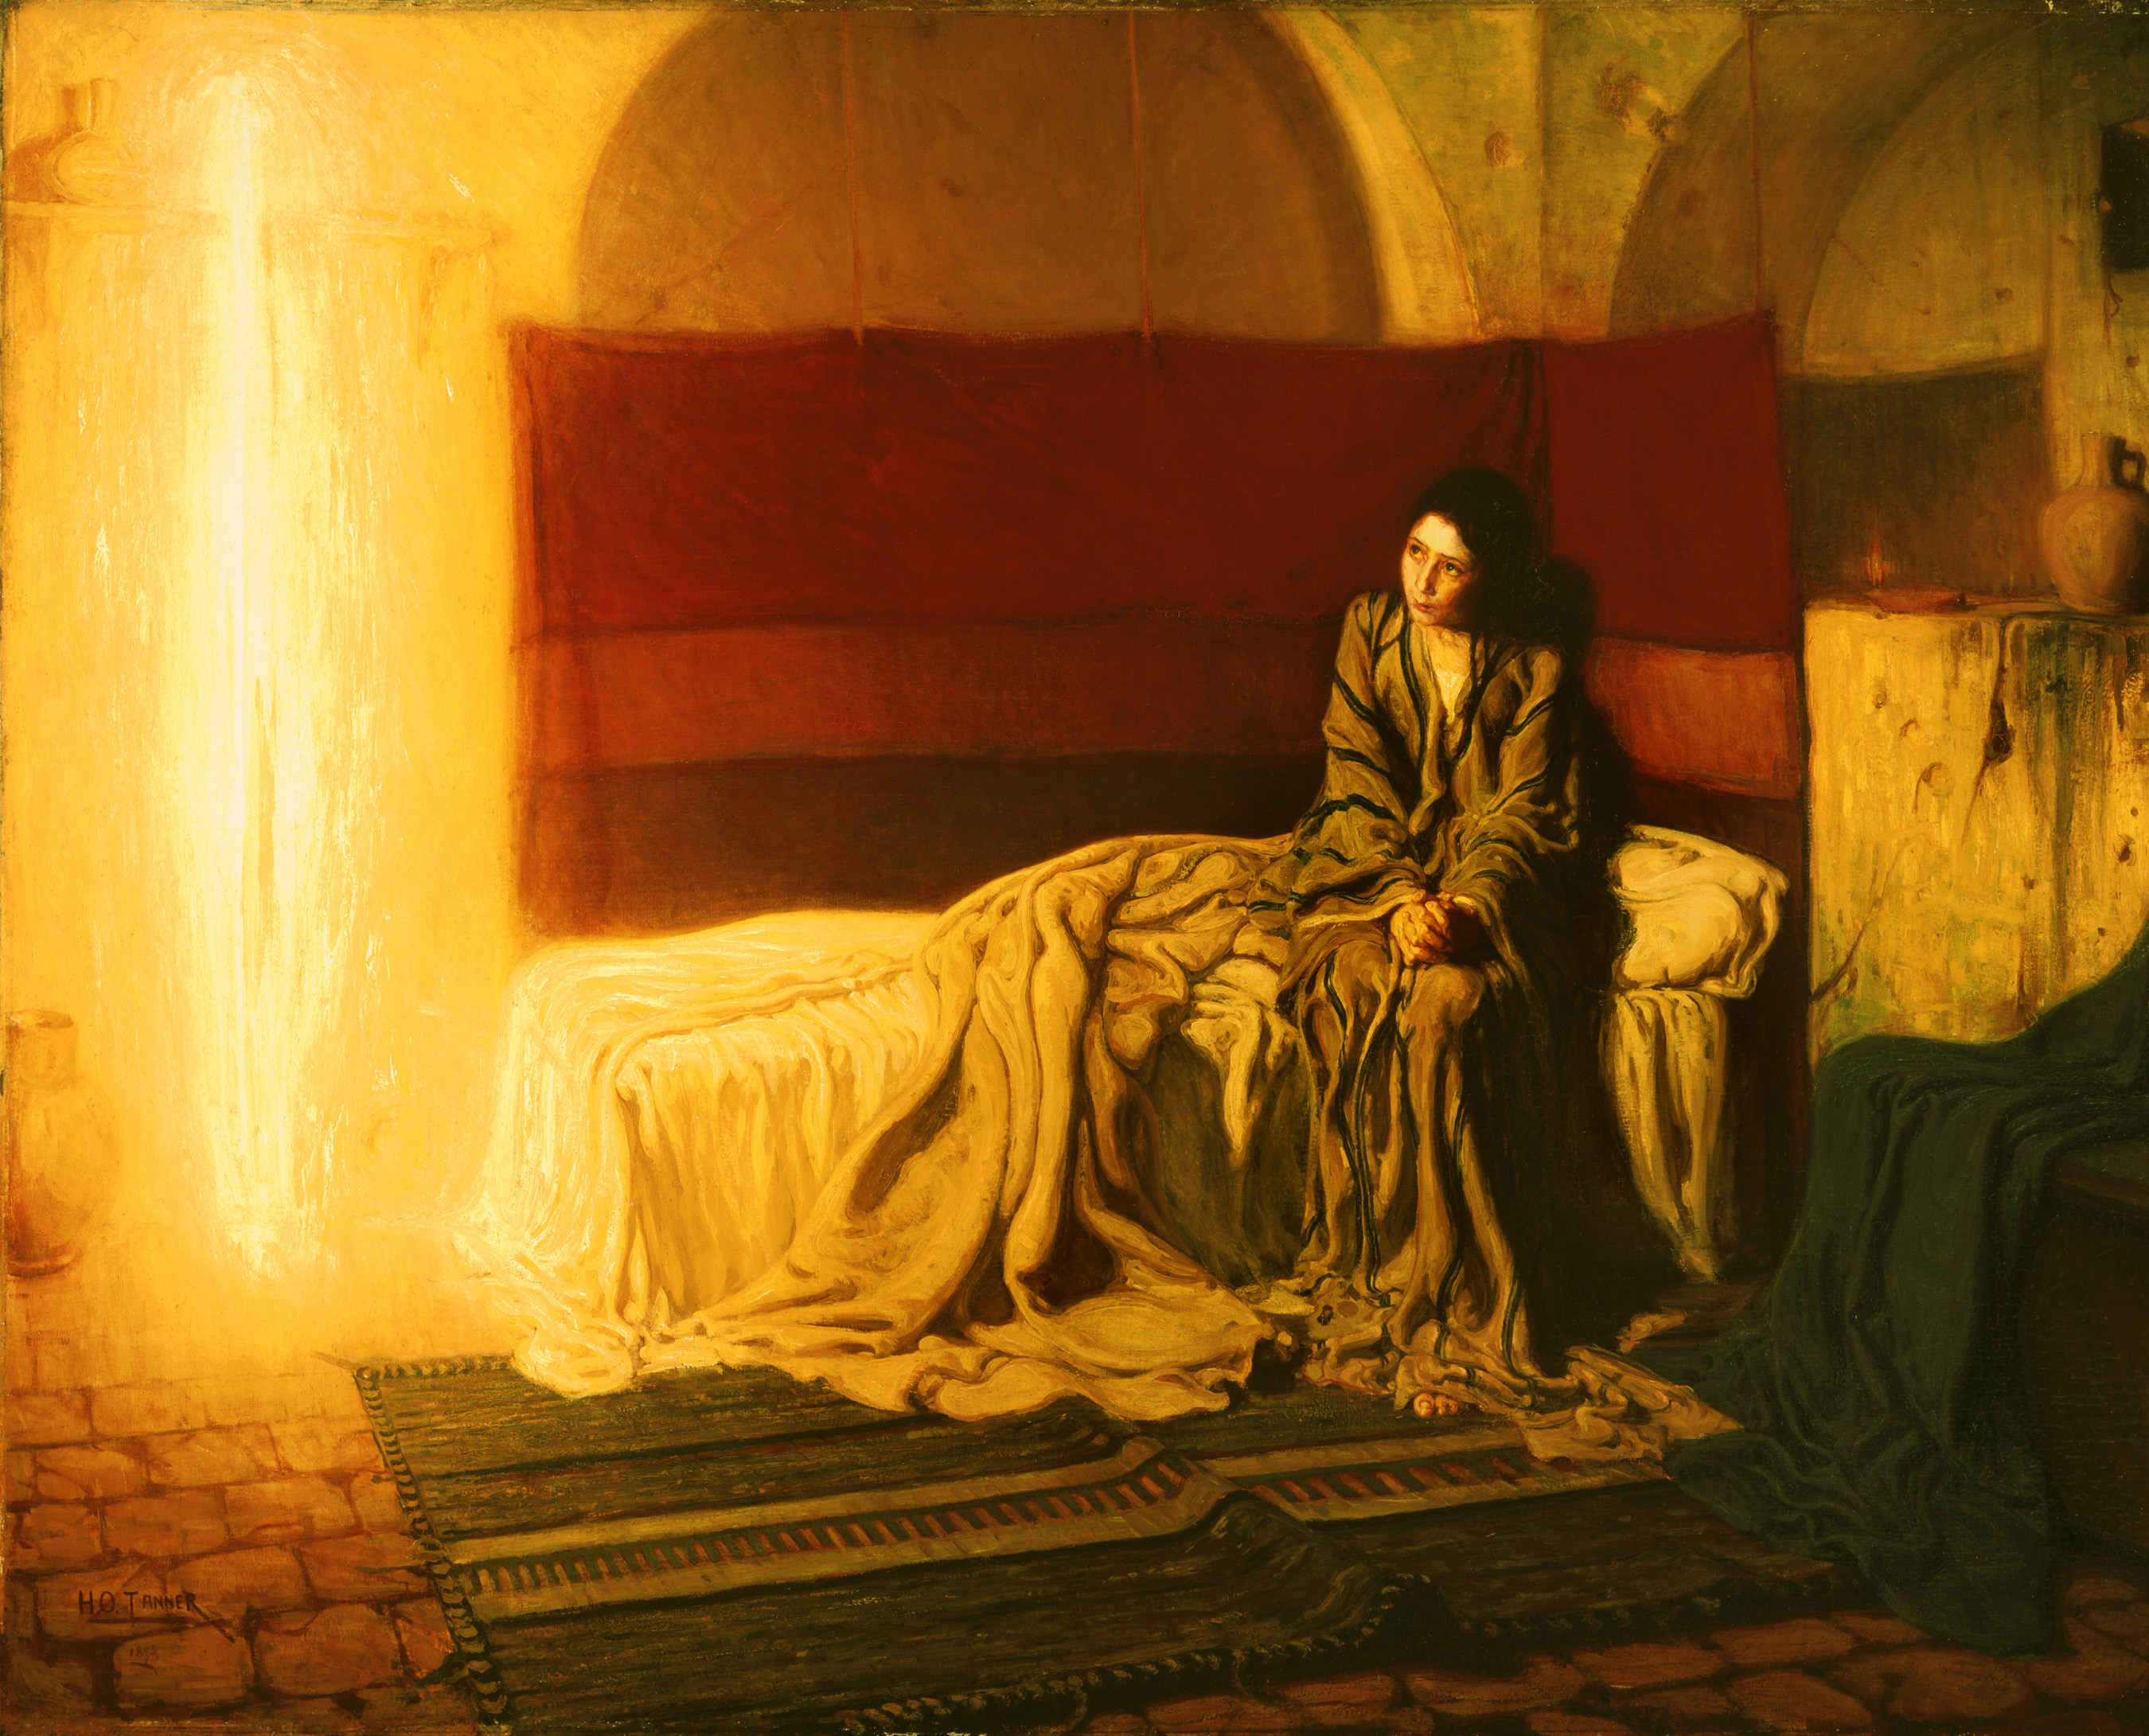 The Annunciation, Henry Ossawa Tanner, 1898